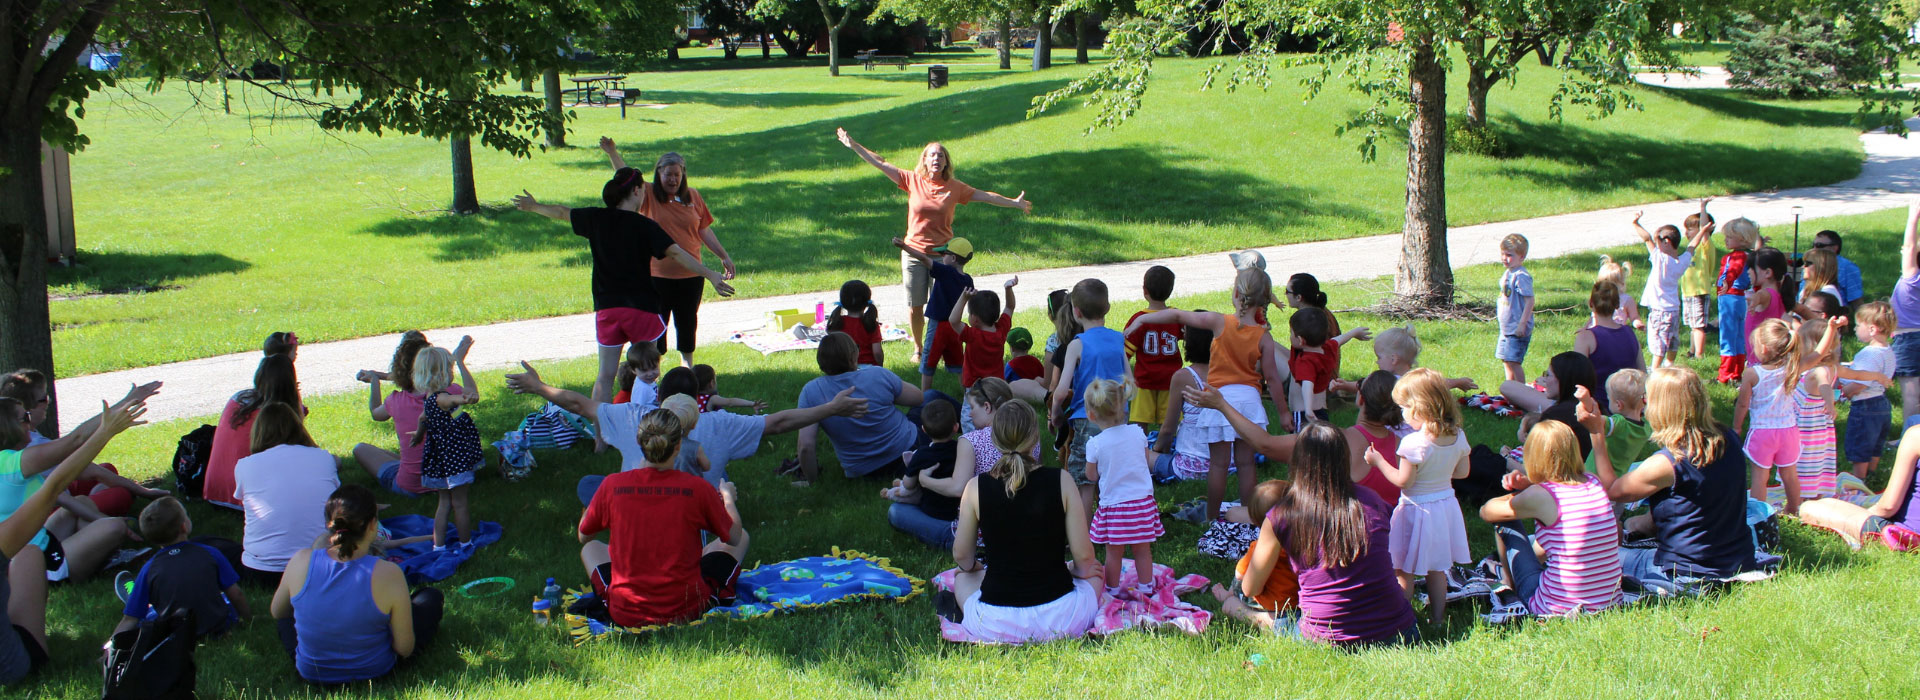 library-story-time-in-the-park-two-librarians-reading-to-crowd